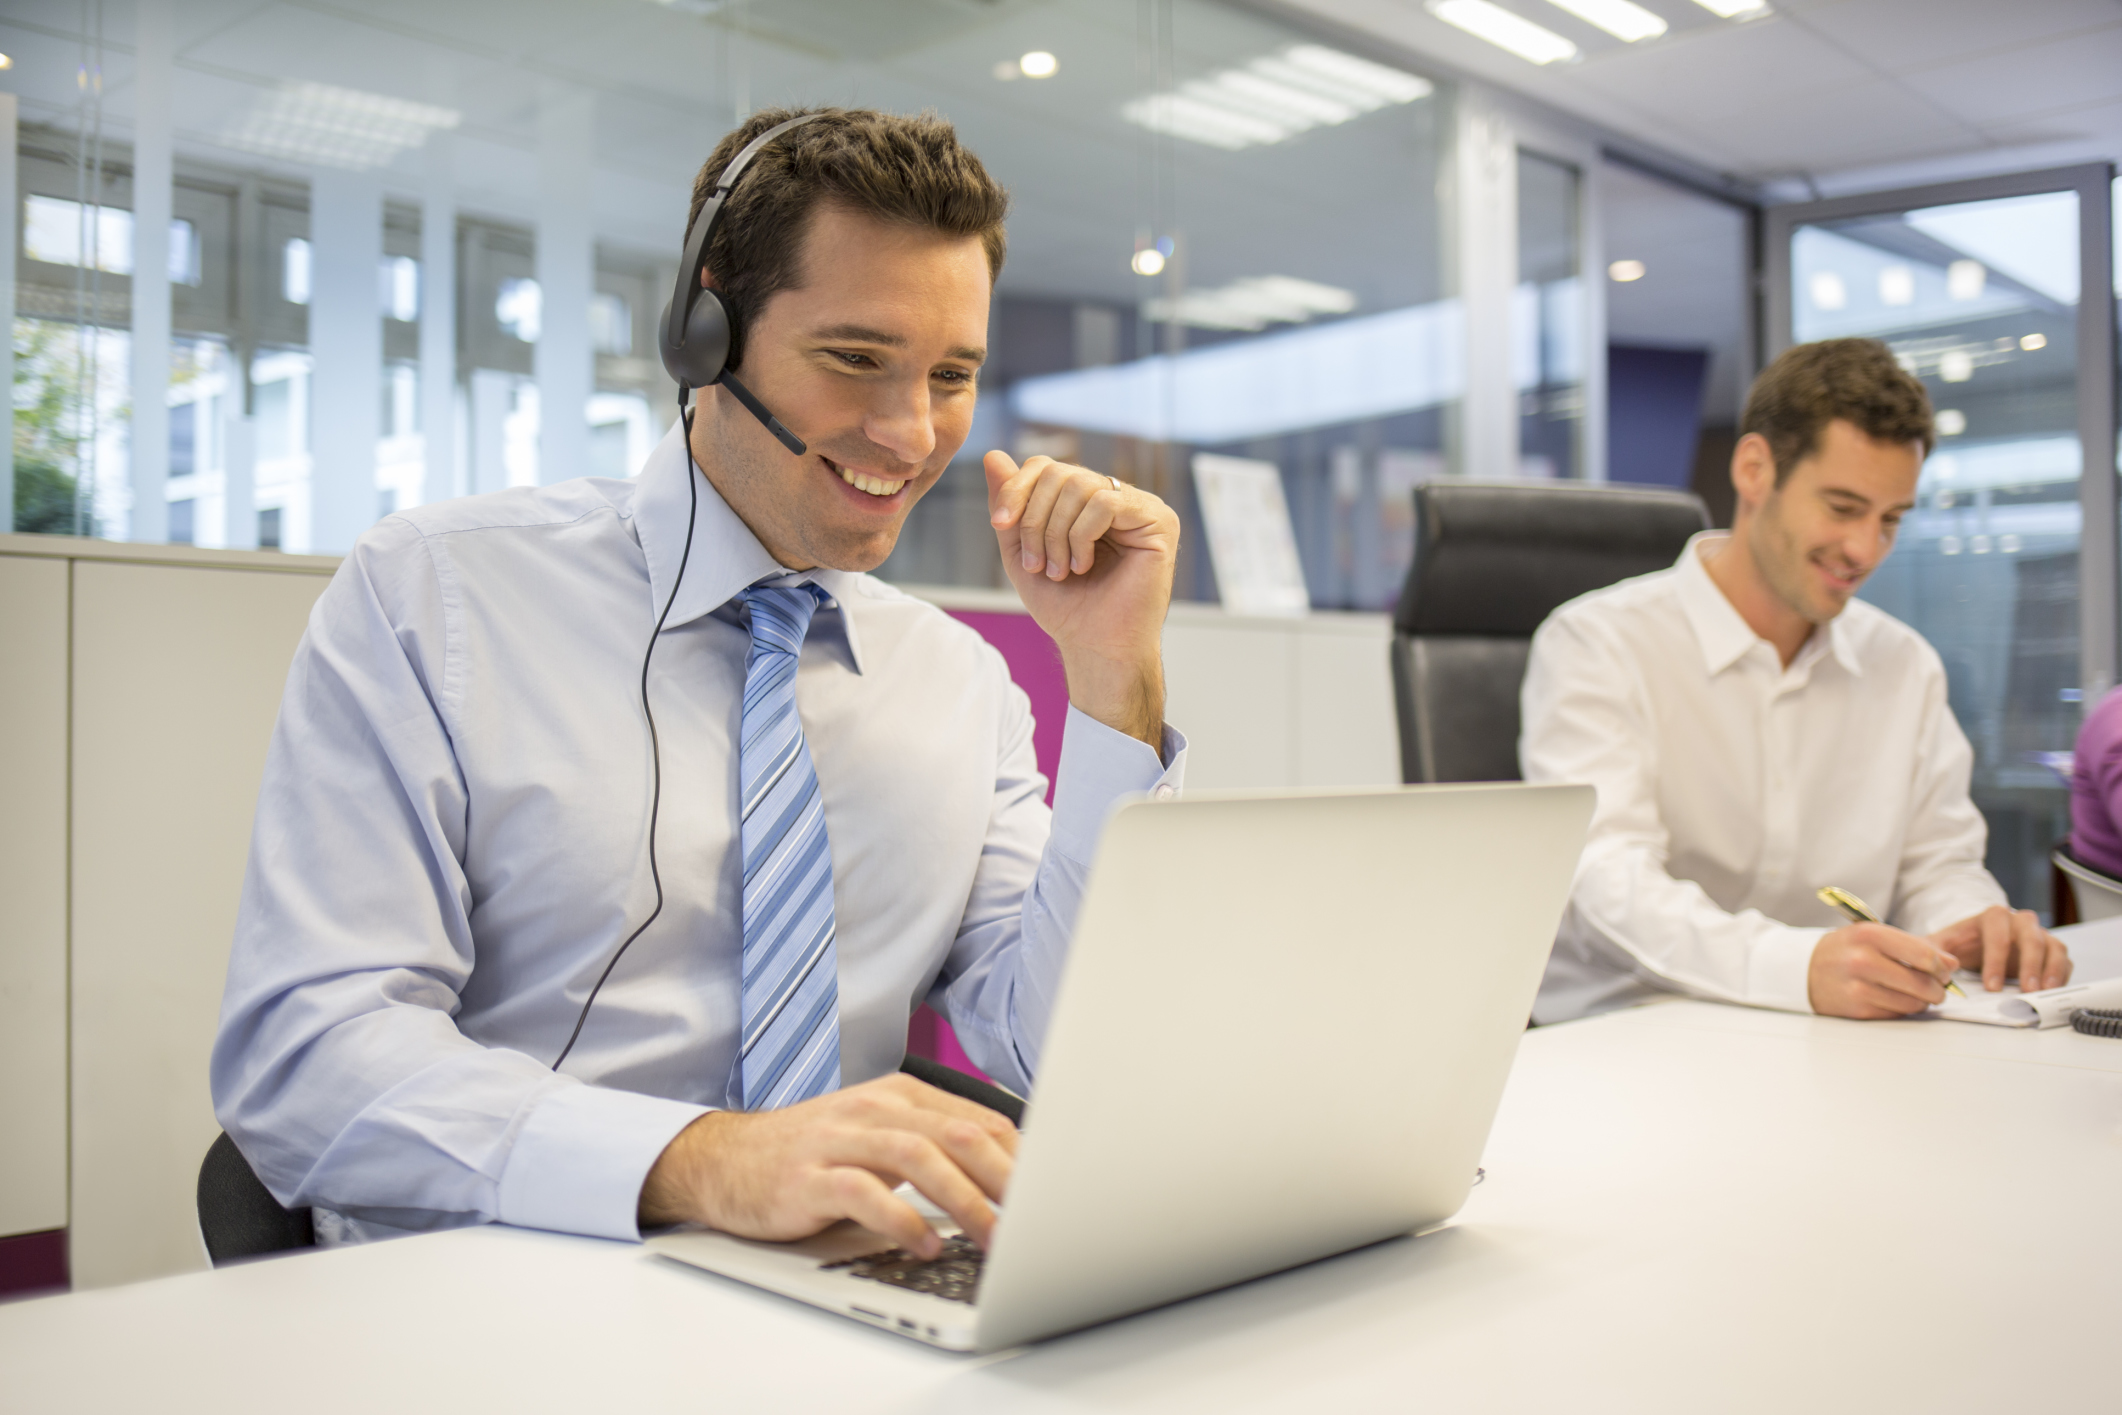 10 Cold Calling Tips To U201cDummy Proofu201d Your Efforts